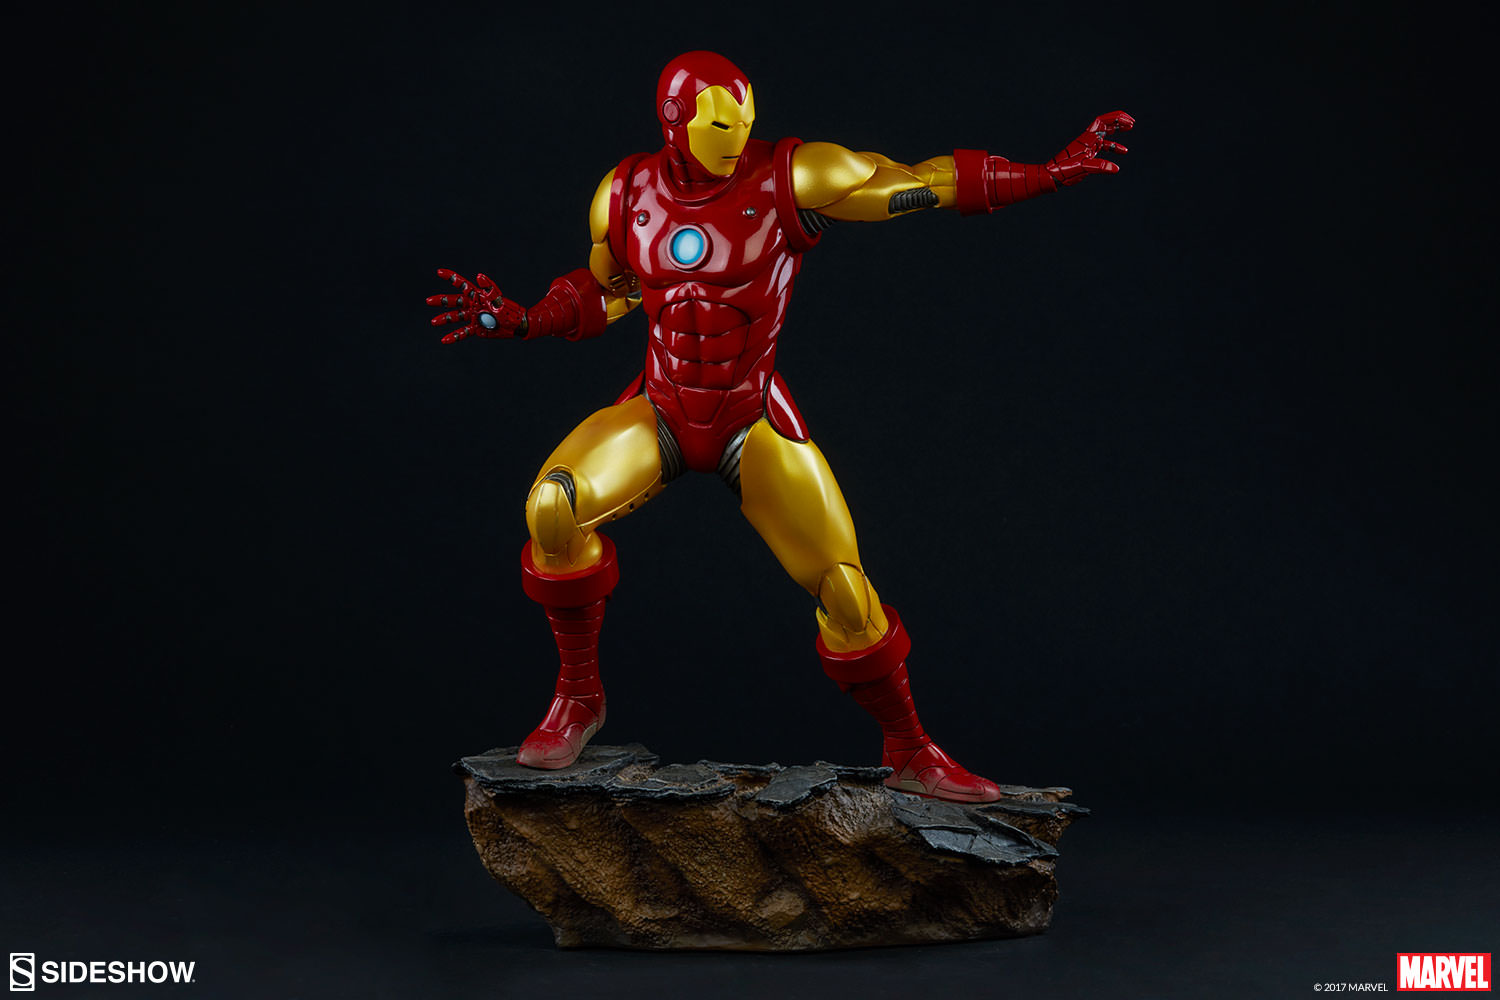 Marvel Iron Man Statue By Sideshow Collectibles Sideshow